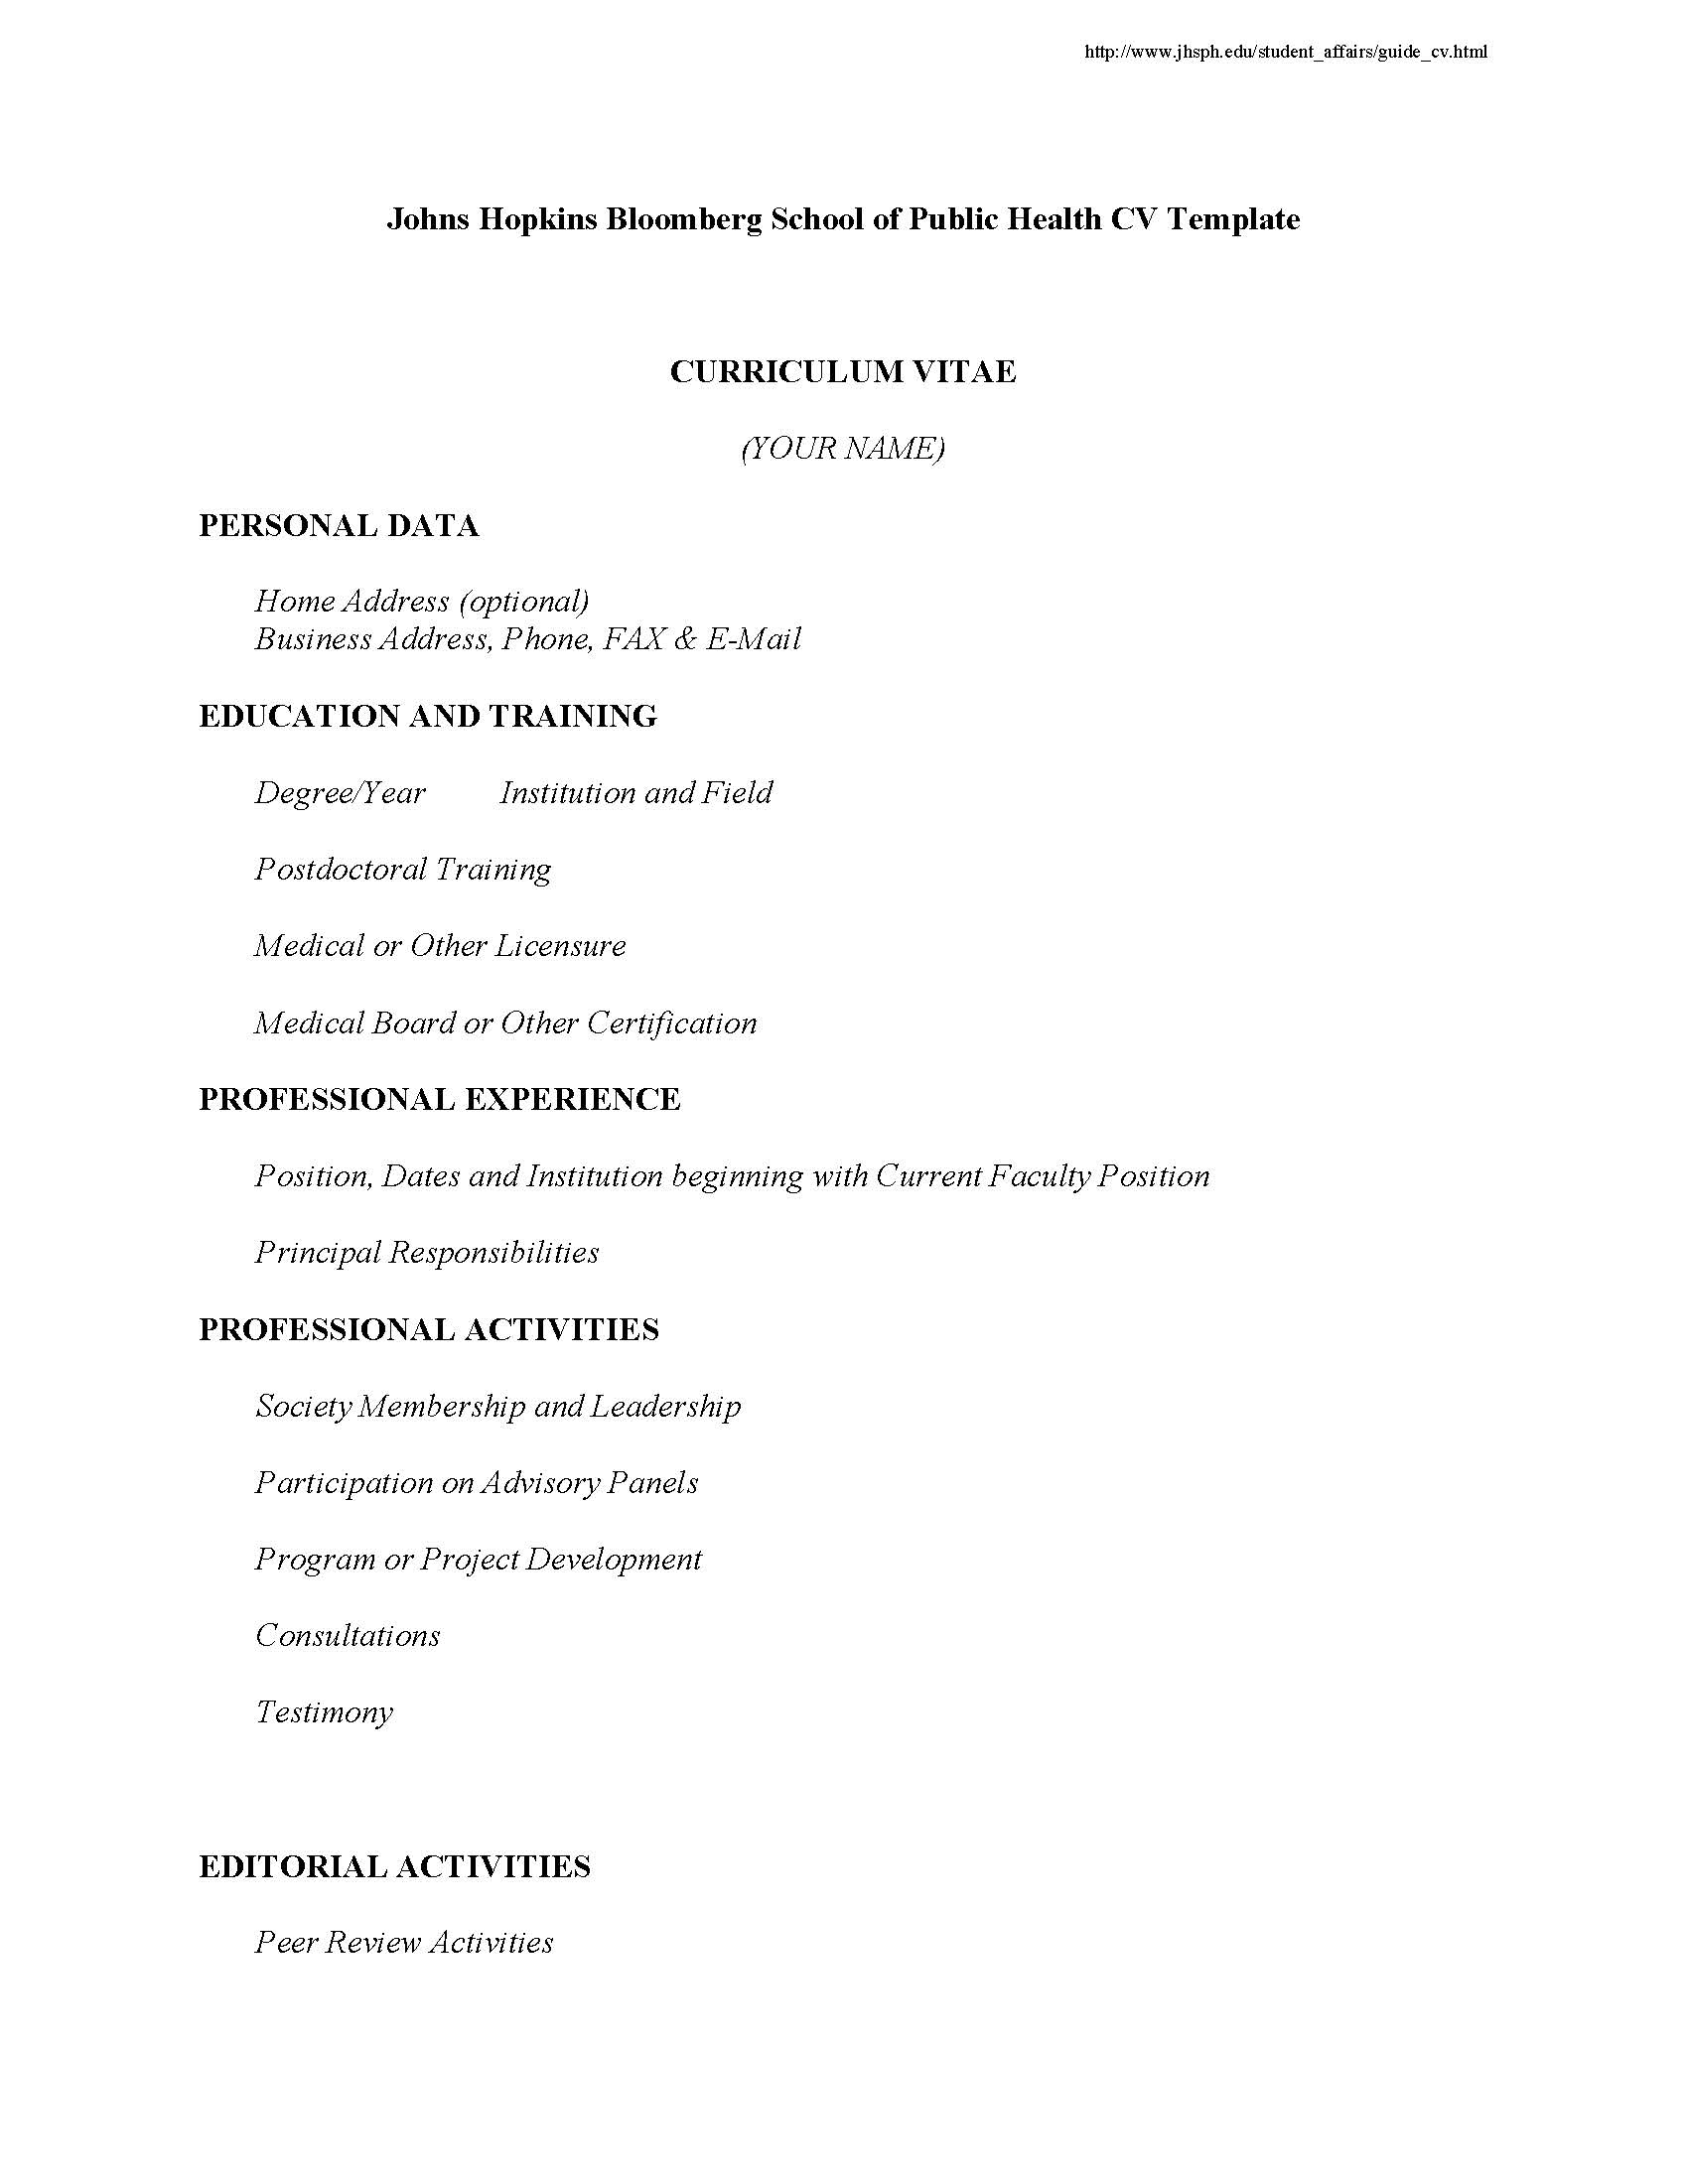 Resumes and cvs career resources for students career services jhsph cv template yelopaper Images